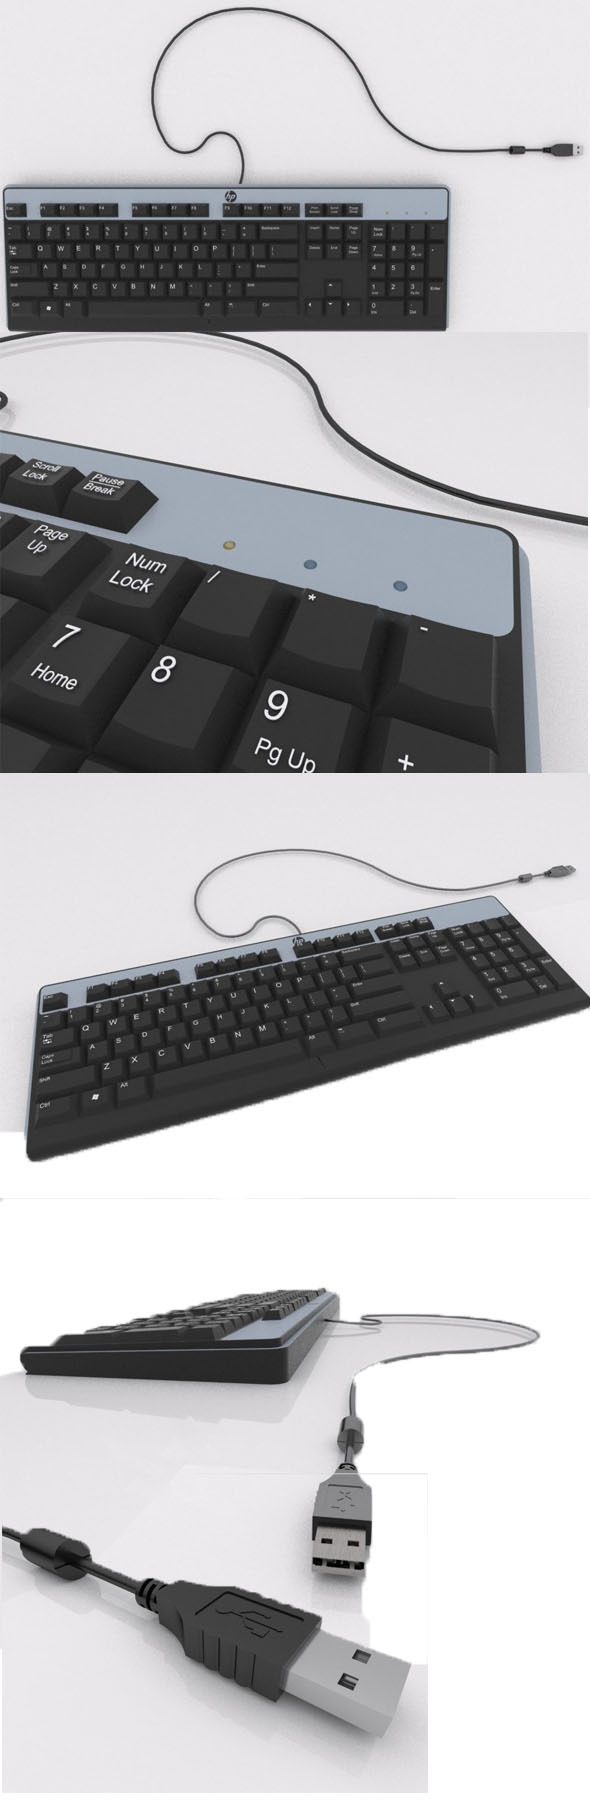 HP's usb keyboard  - 3DOcean Item for Sale